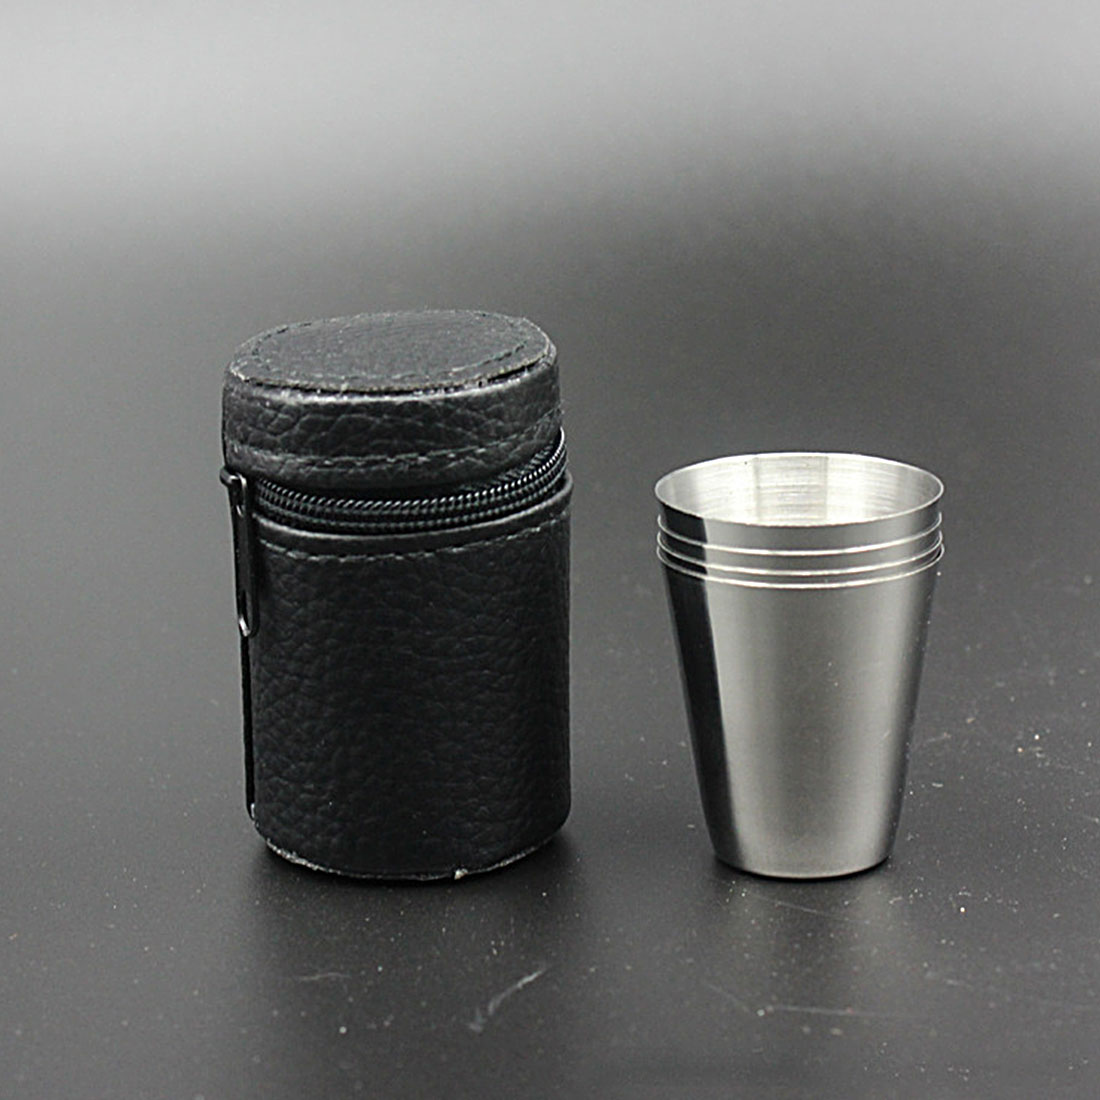 4Pcs Outdoor Camping Stainless Steel Mini Cup Mug Drinking Coffee Beer With Case Camping Equipment